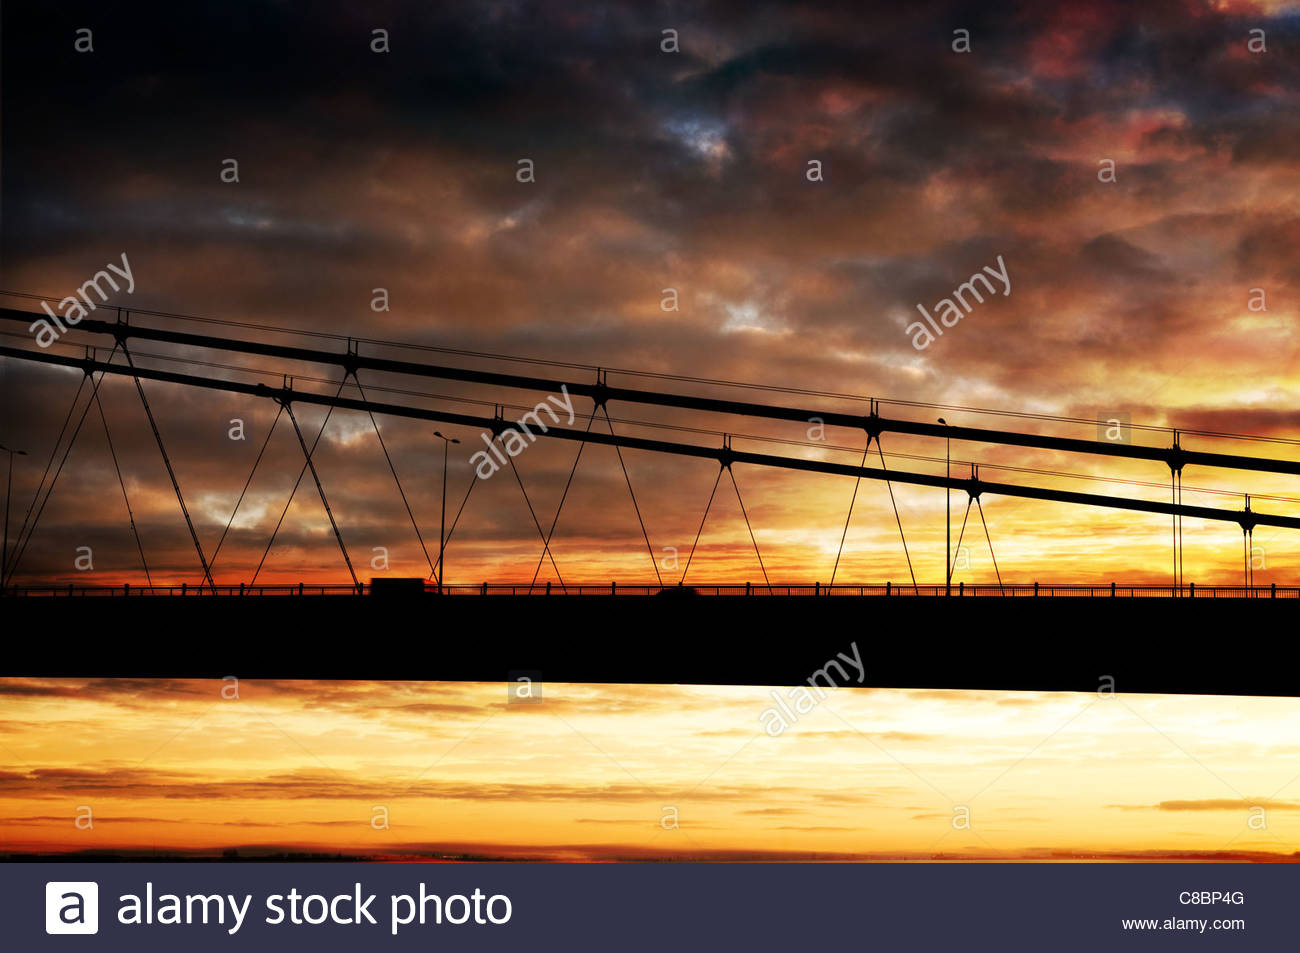 Humber bridge - Stock Image